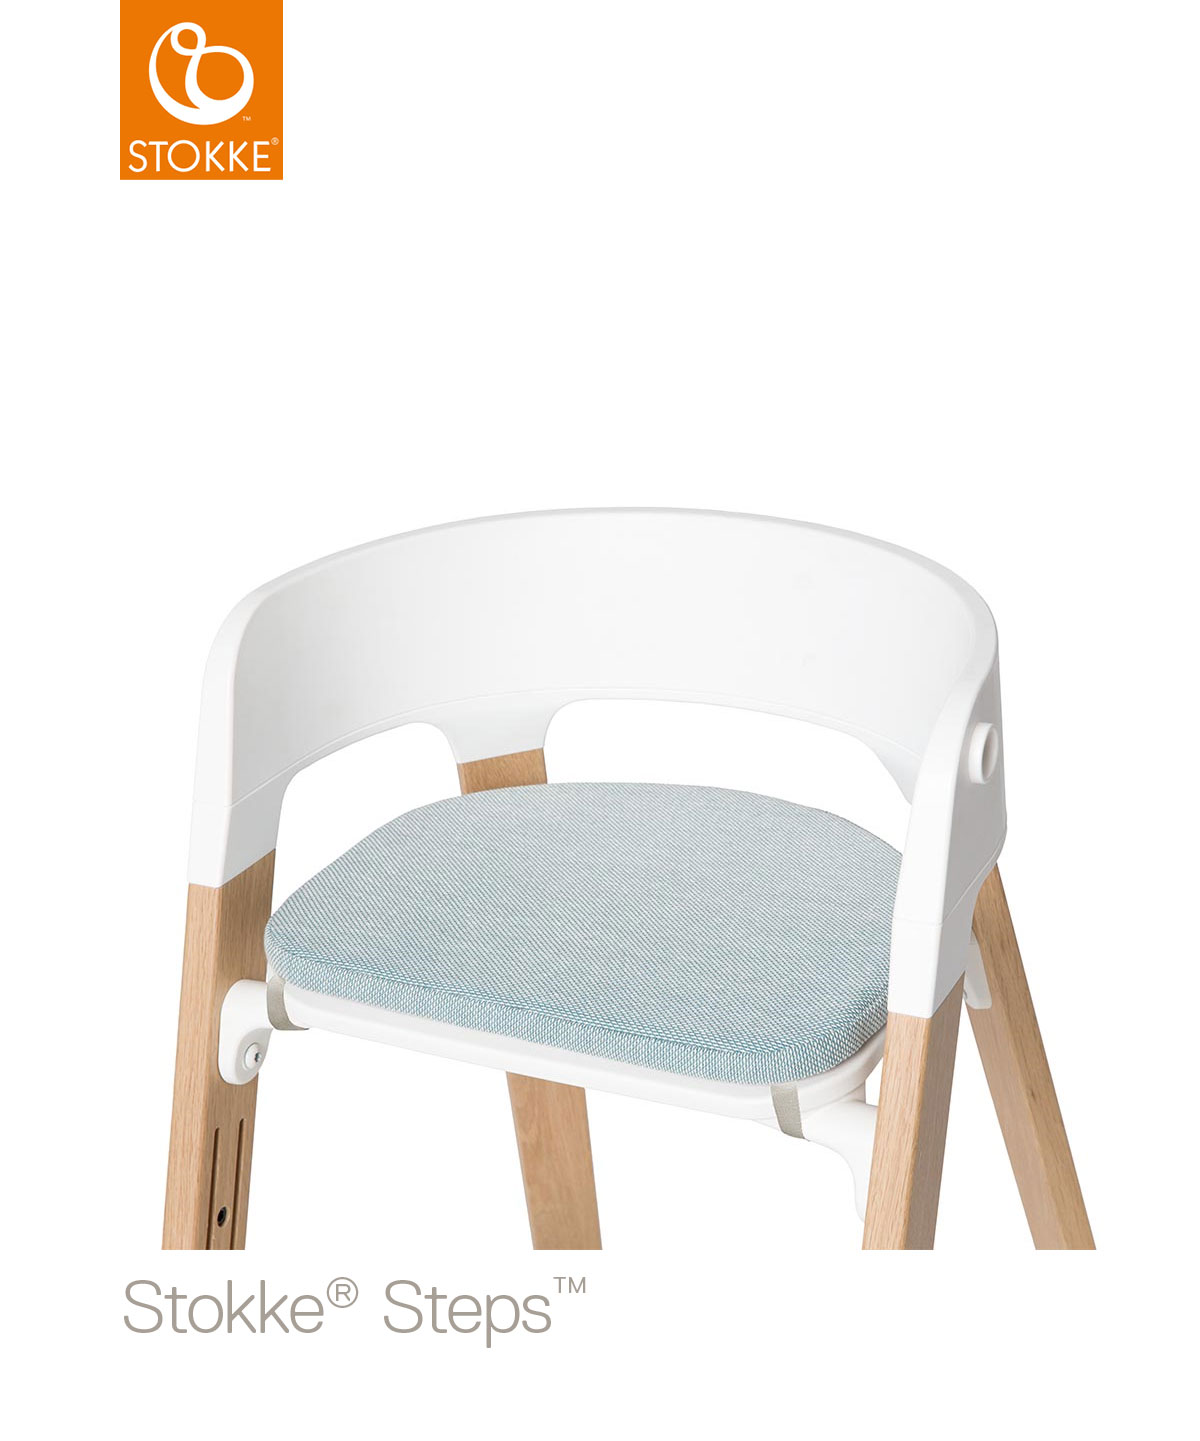 tripp trapp und zubeh r stokke marken baby bottosso online. Black Bedroom Furniture Sets. Home Design Ideas